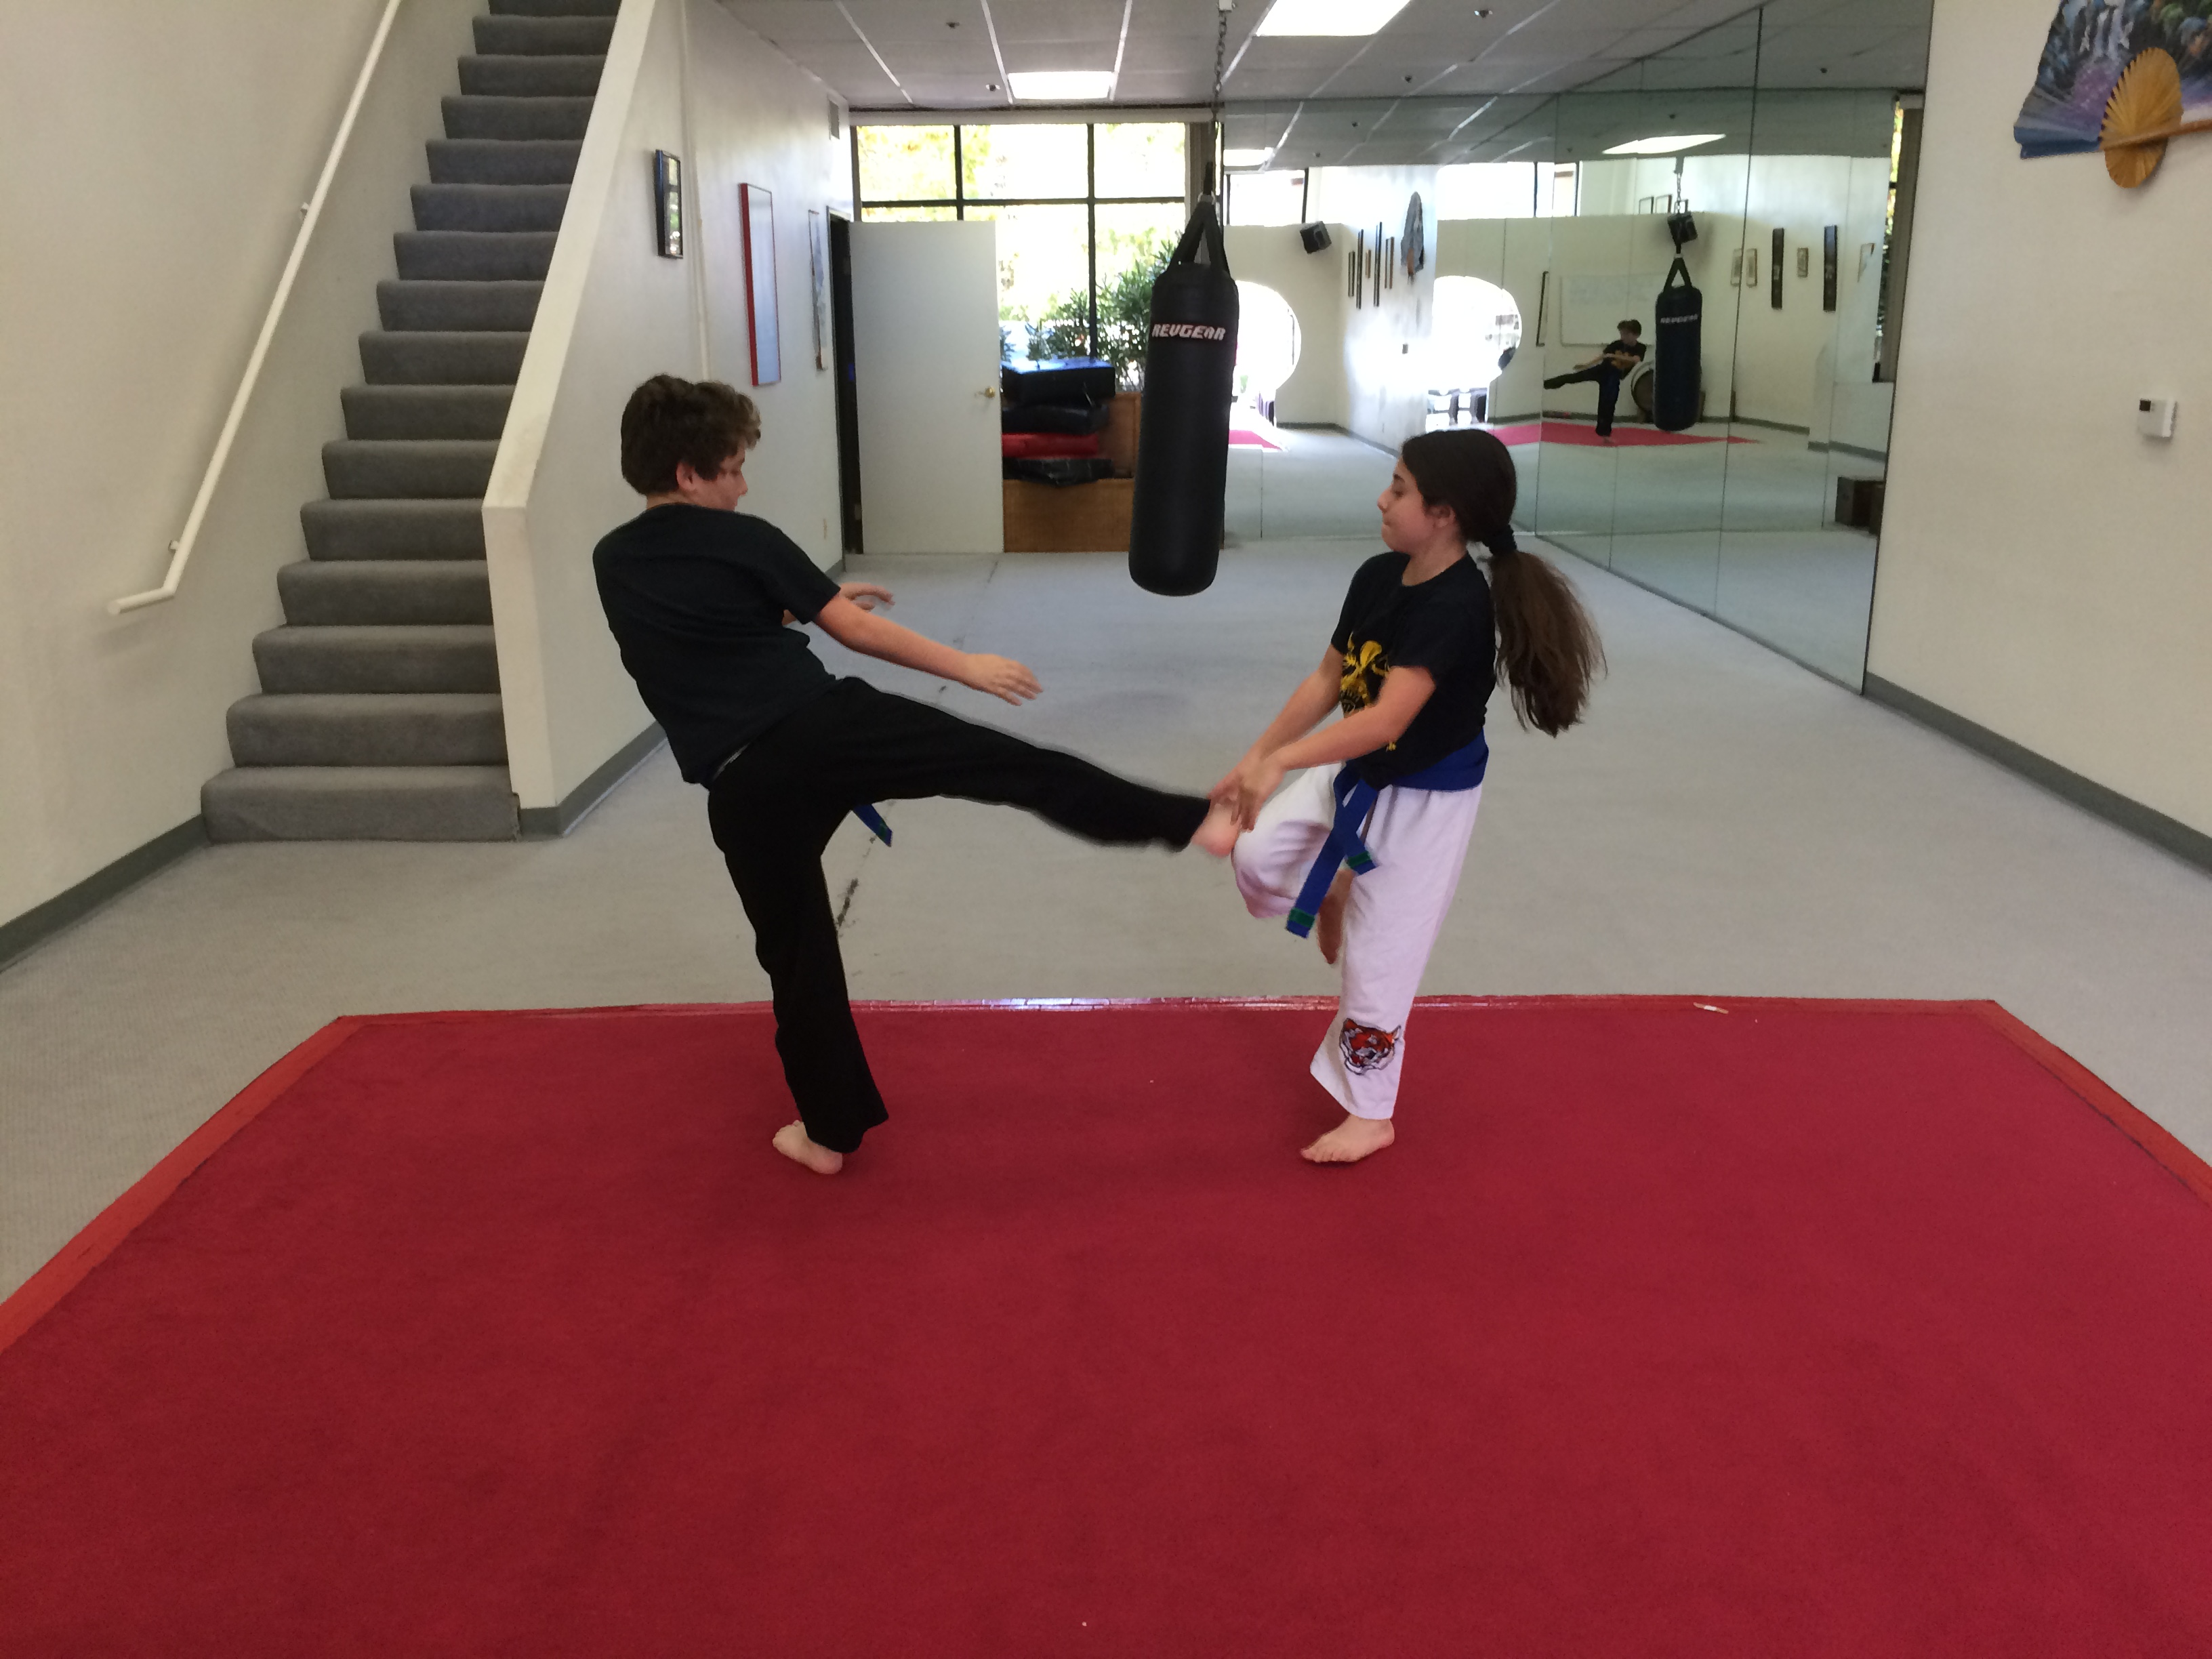 Fred Villari's Studios of Self Defense, Villari Martial Arts , Villari's Karate, Kung Fu, Jiu-Jitsu - ad image